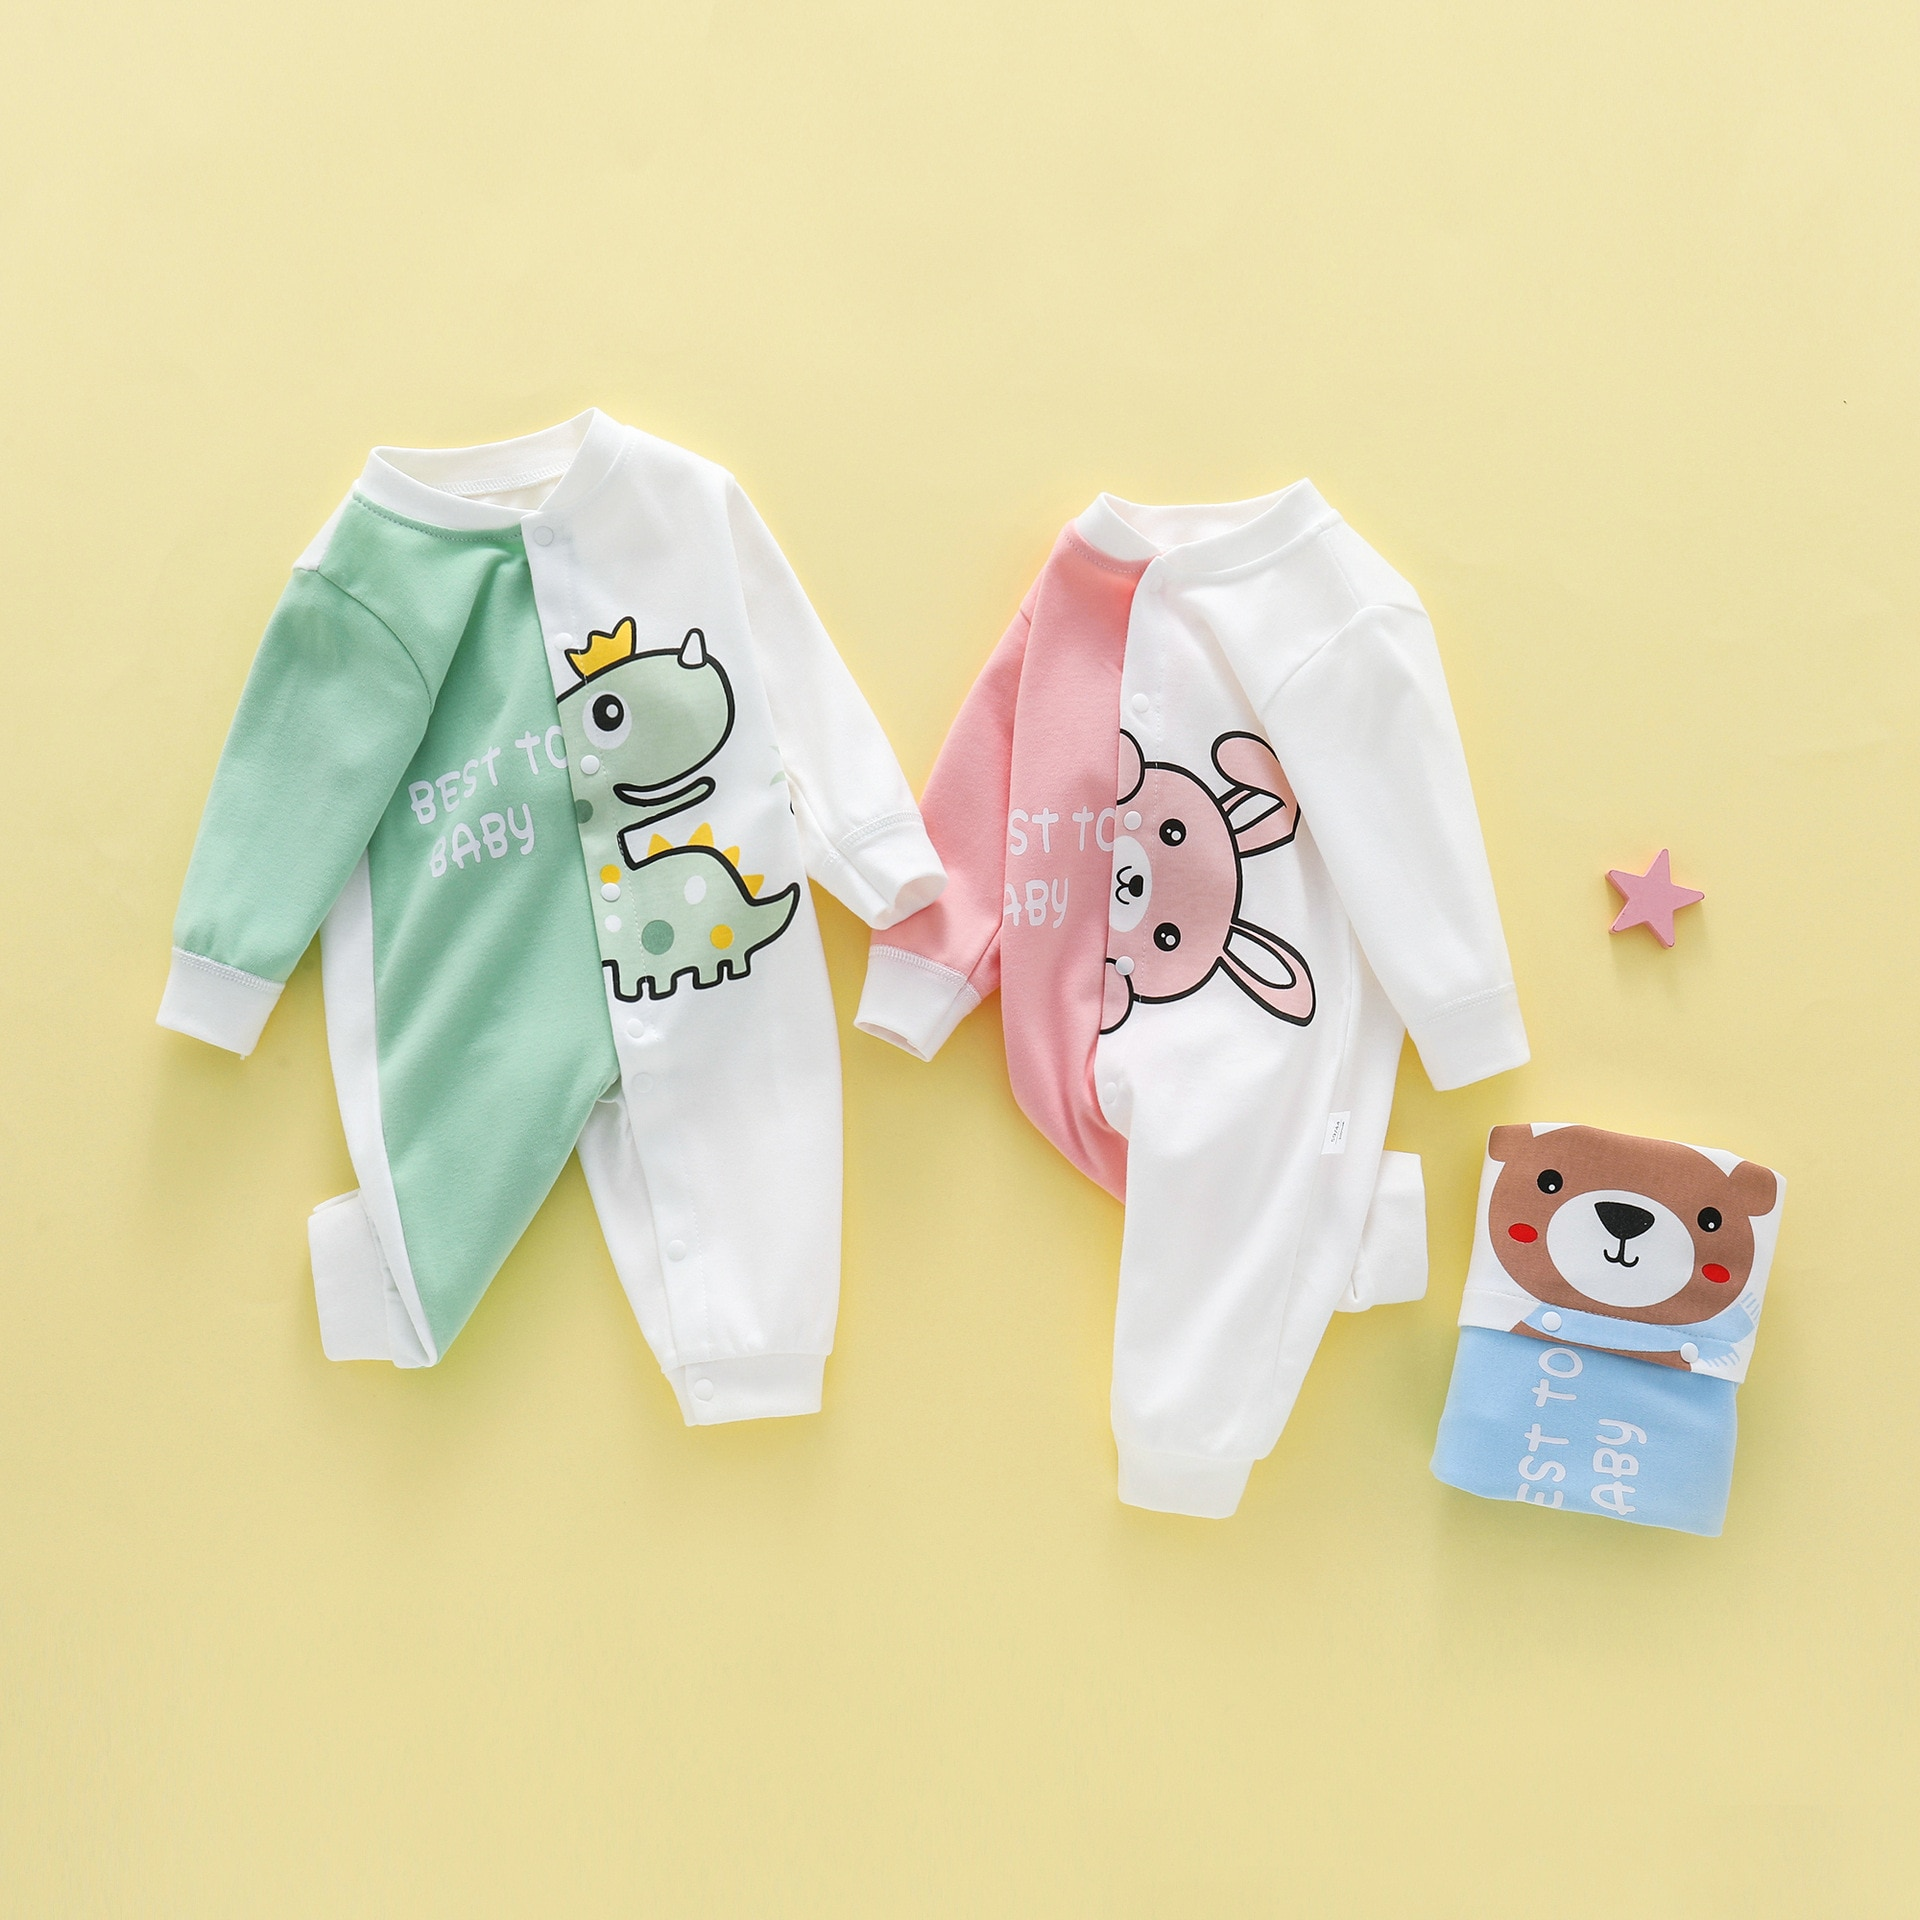 baby girl clothes autumn lattice knitted baby clothes newborn baby girl romper cotton baby cardigan sweater romper jumpsuit Baby Romper Spring Cotton Baby Clothes Cartoon Print Button Newborn Baby Jumpsuit Infant Boy Jumpsuit Girl Romper Overalls 2021